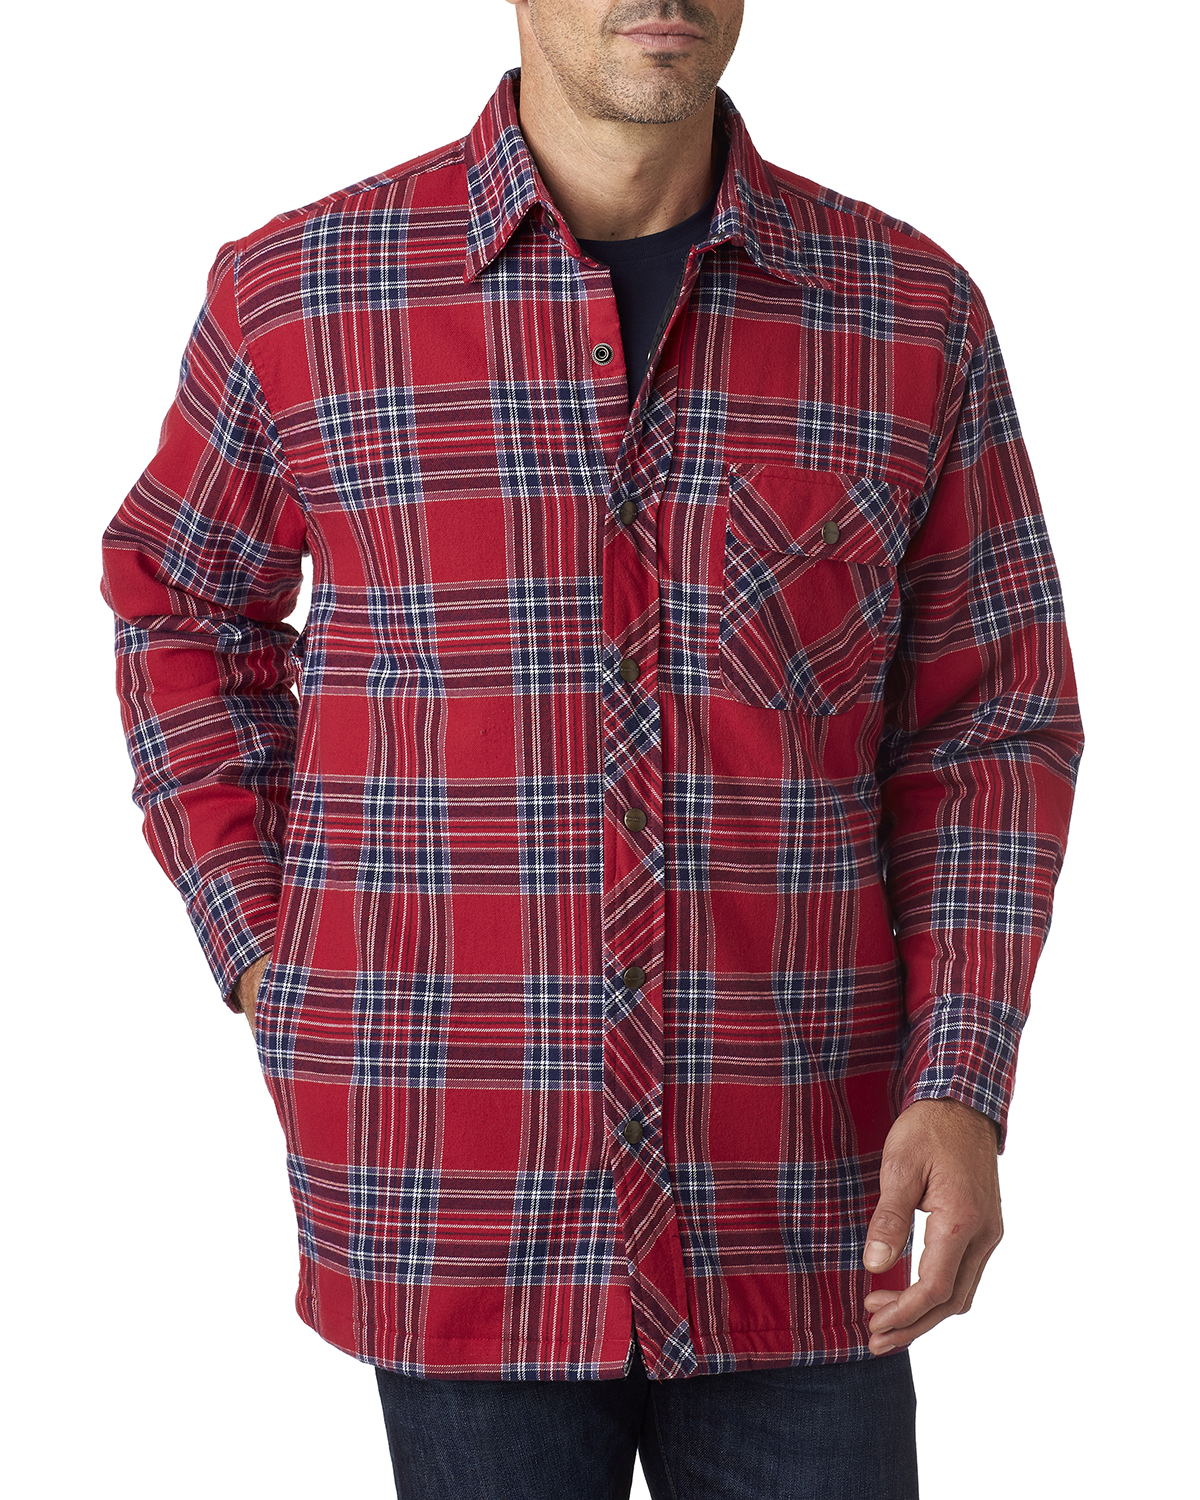 Backpacker BP7002 - Men's Flannel Shirt Jacket with ...